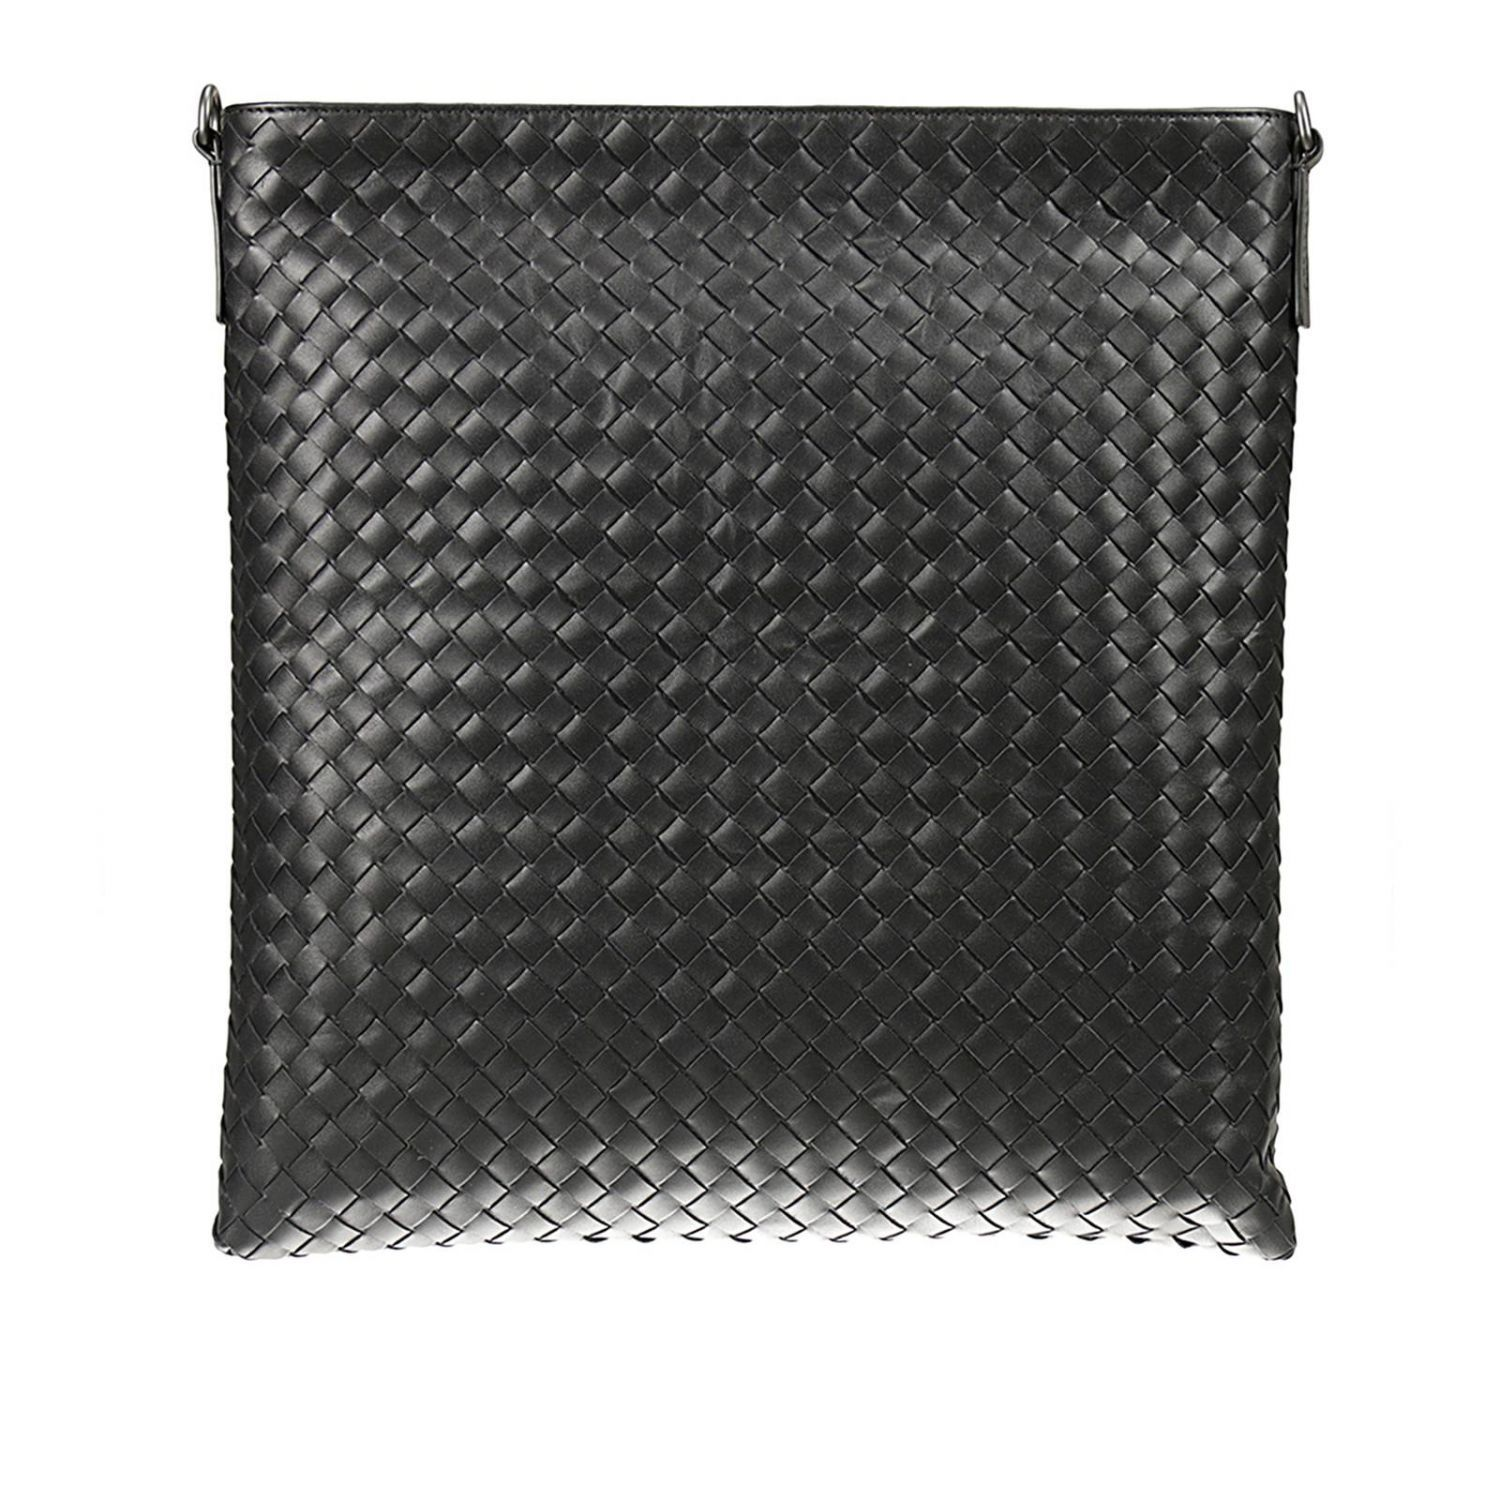 BOTTEGA VENETA Nero Intrecciato Large Messenger Bag  in Black